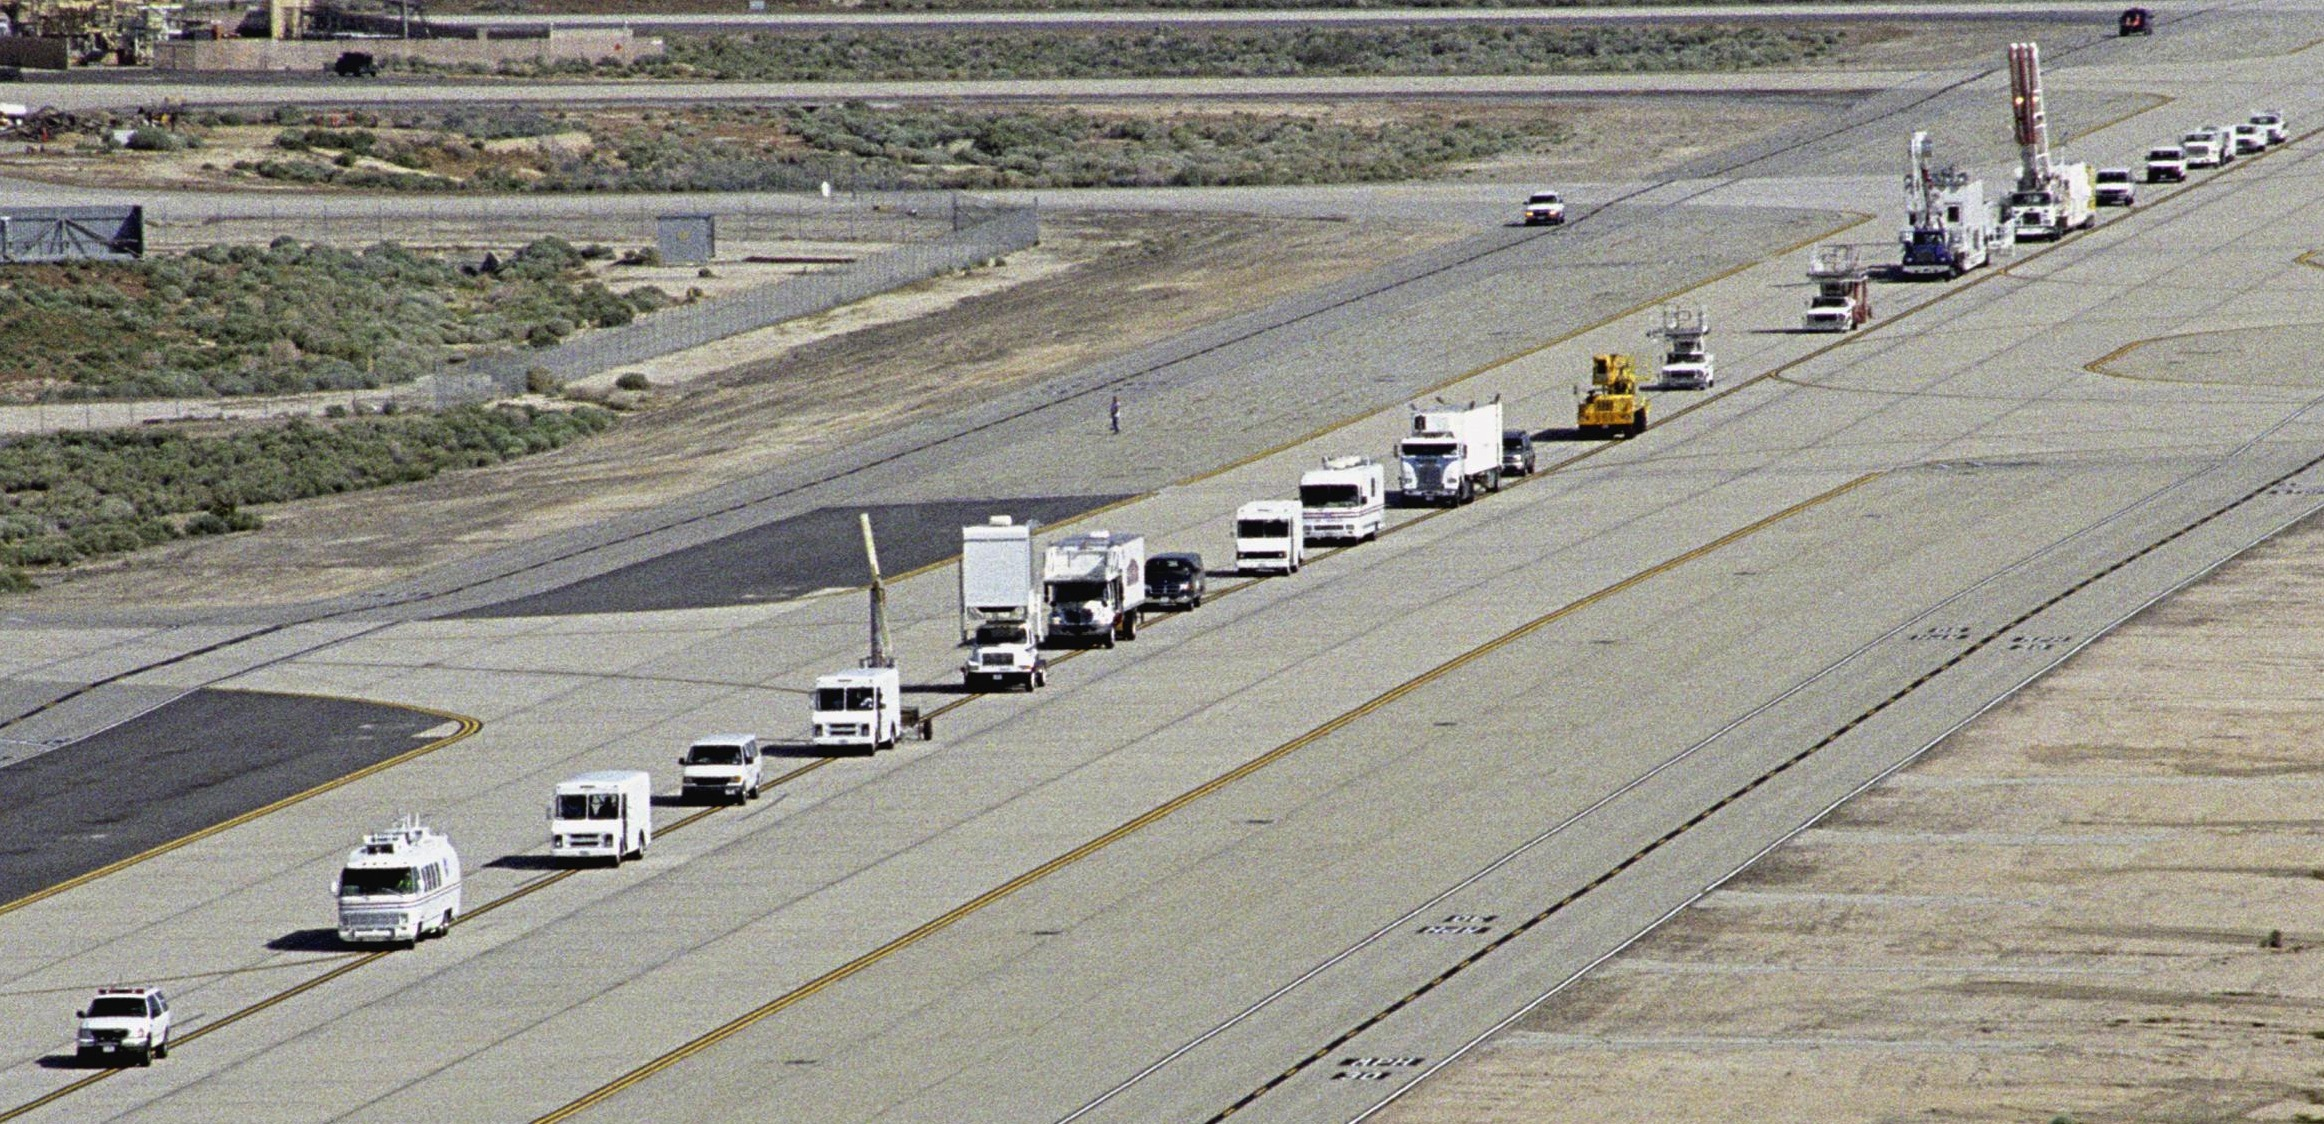 space shuttle landing at edwards air force base - photo #33